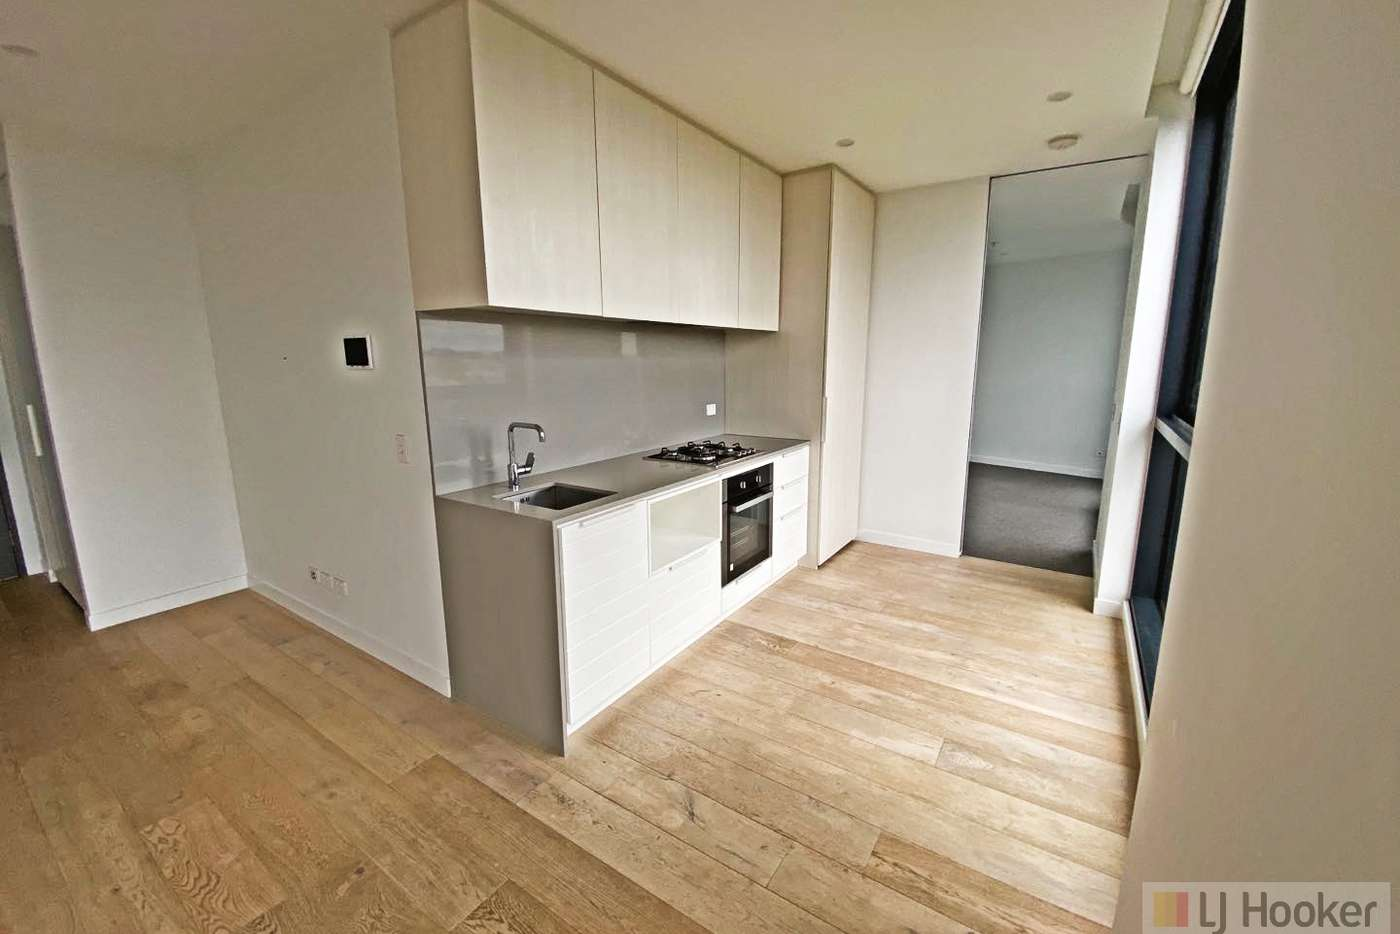 Main view of Homely apartment listing, 1211/91 Galada Avenue, Parkville VIC 3052